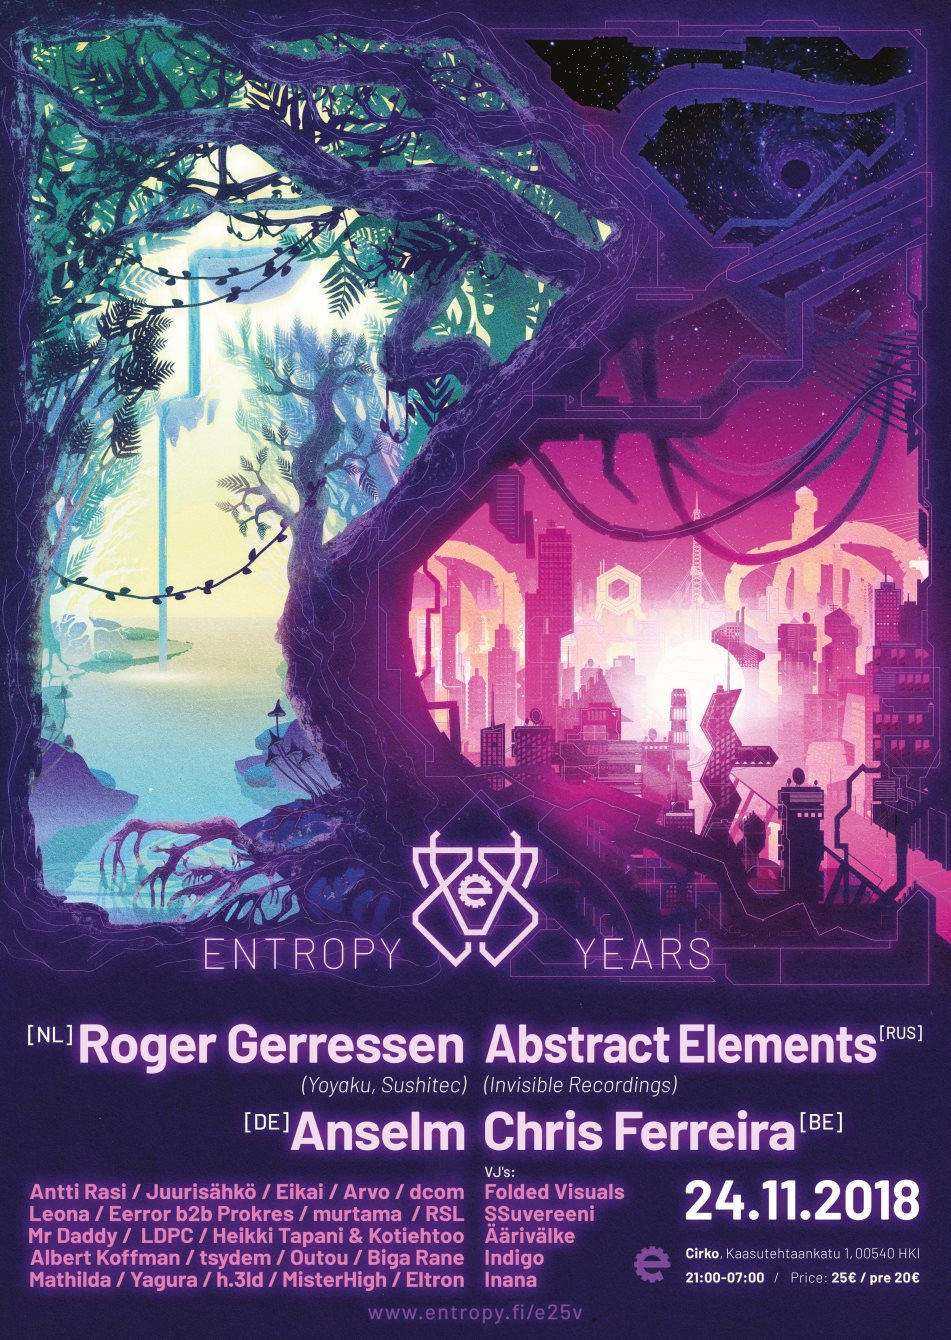 Entropy 25 Years